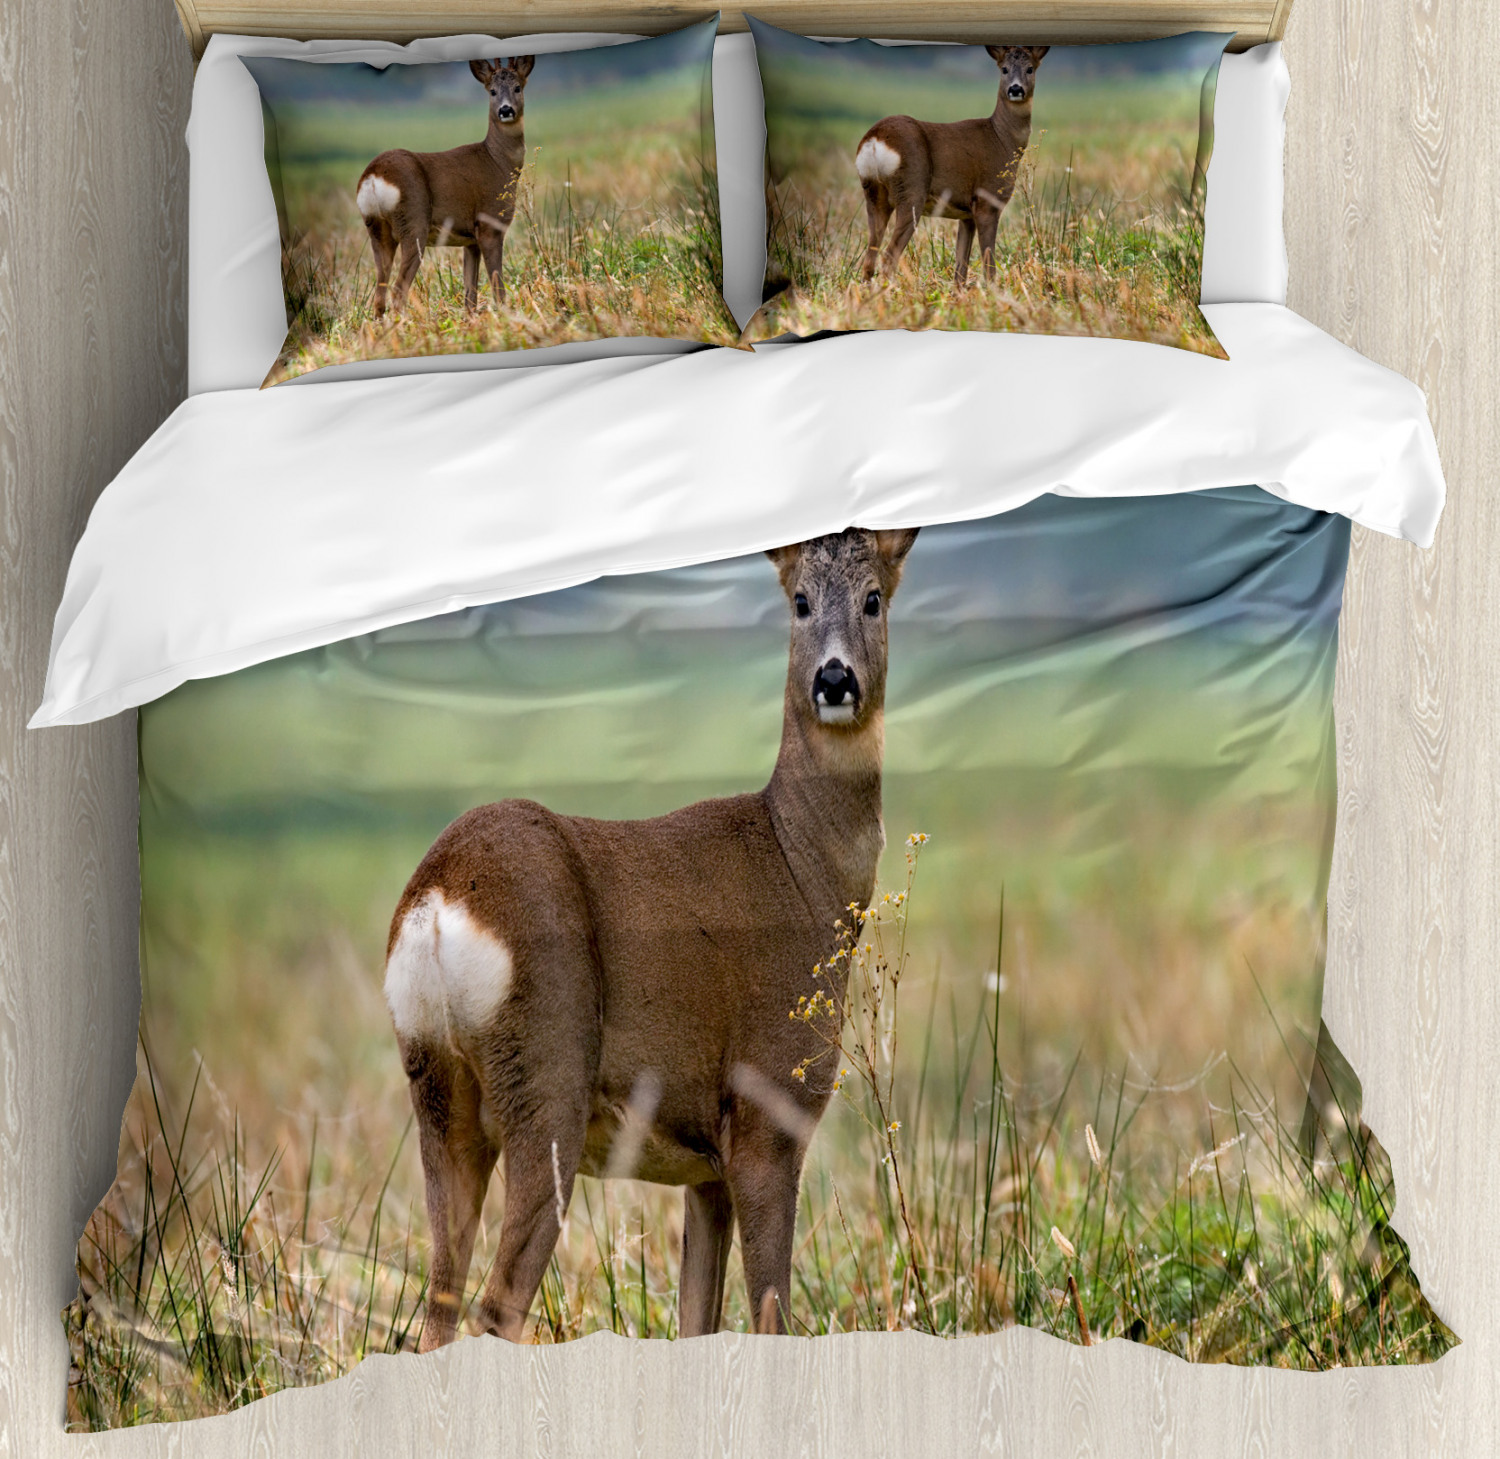 Hunting Duvet Cover Set with Pillow Shams Deer Wildlife Print